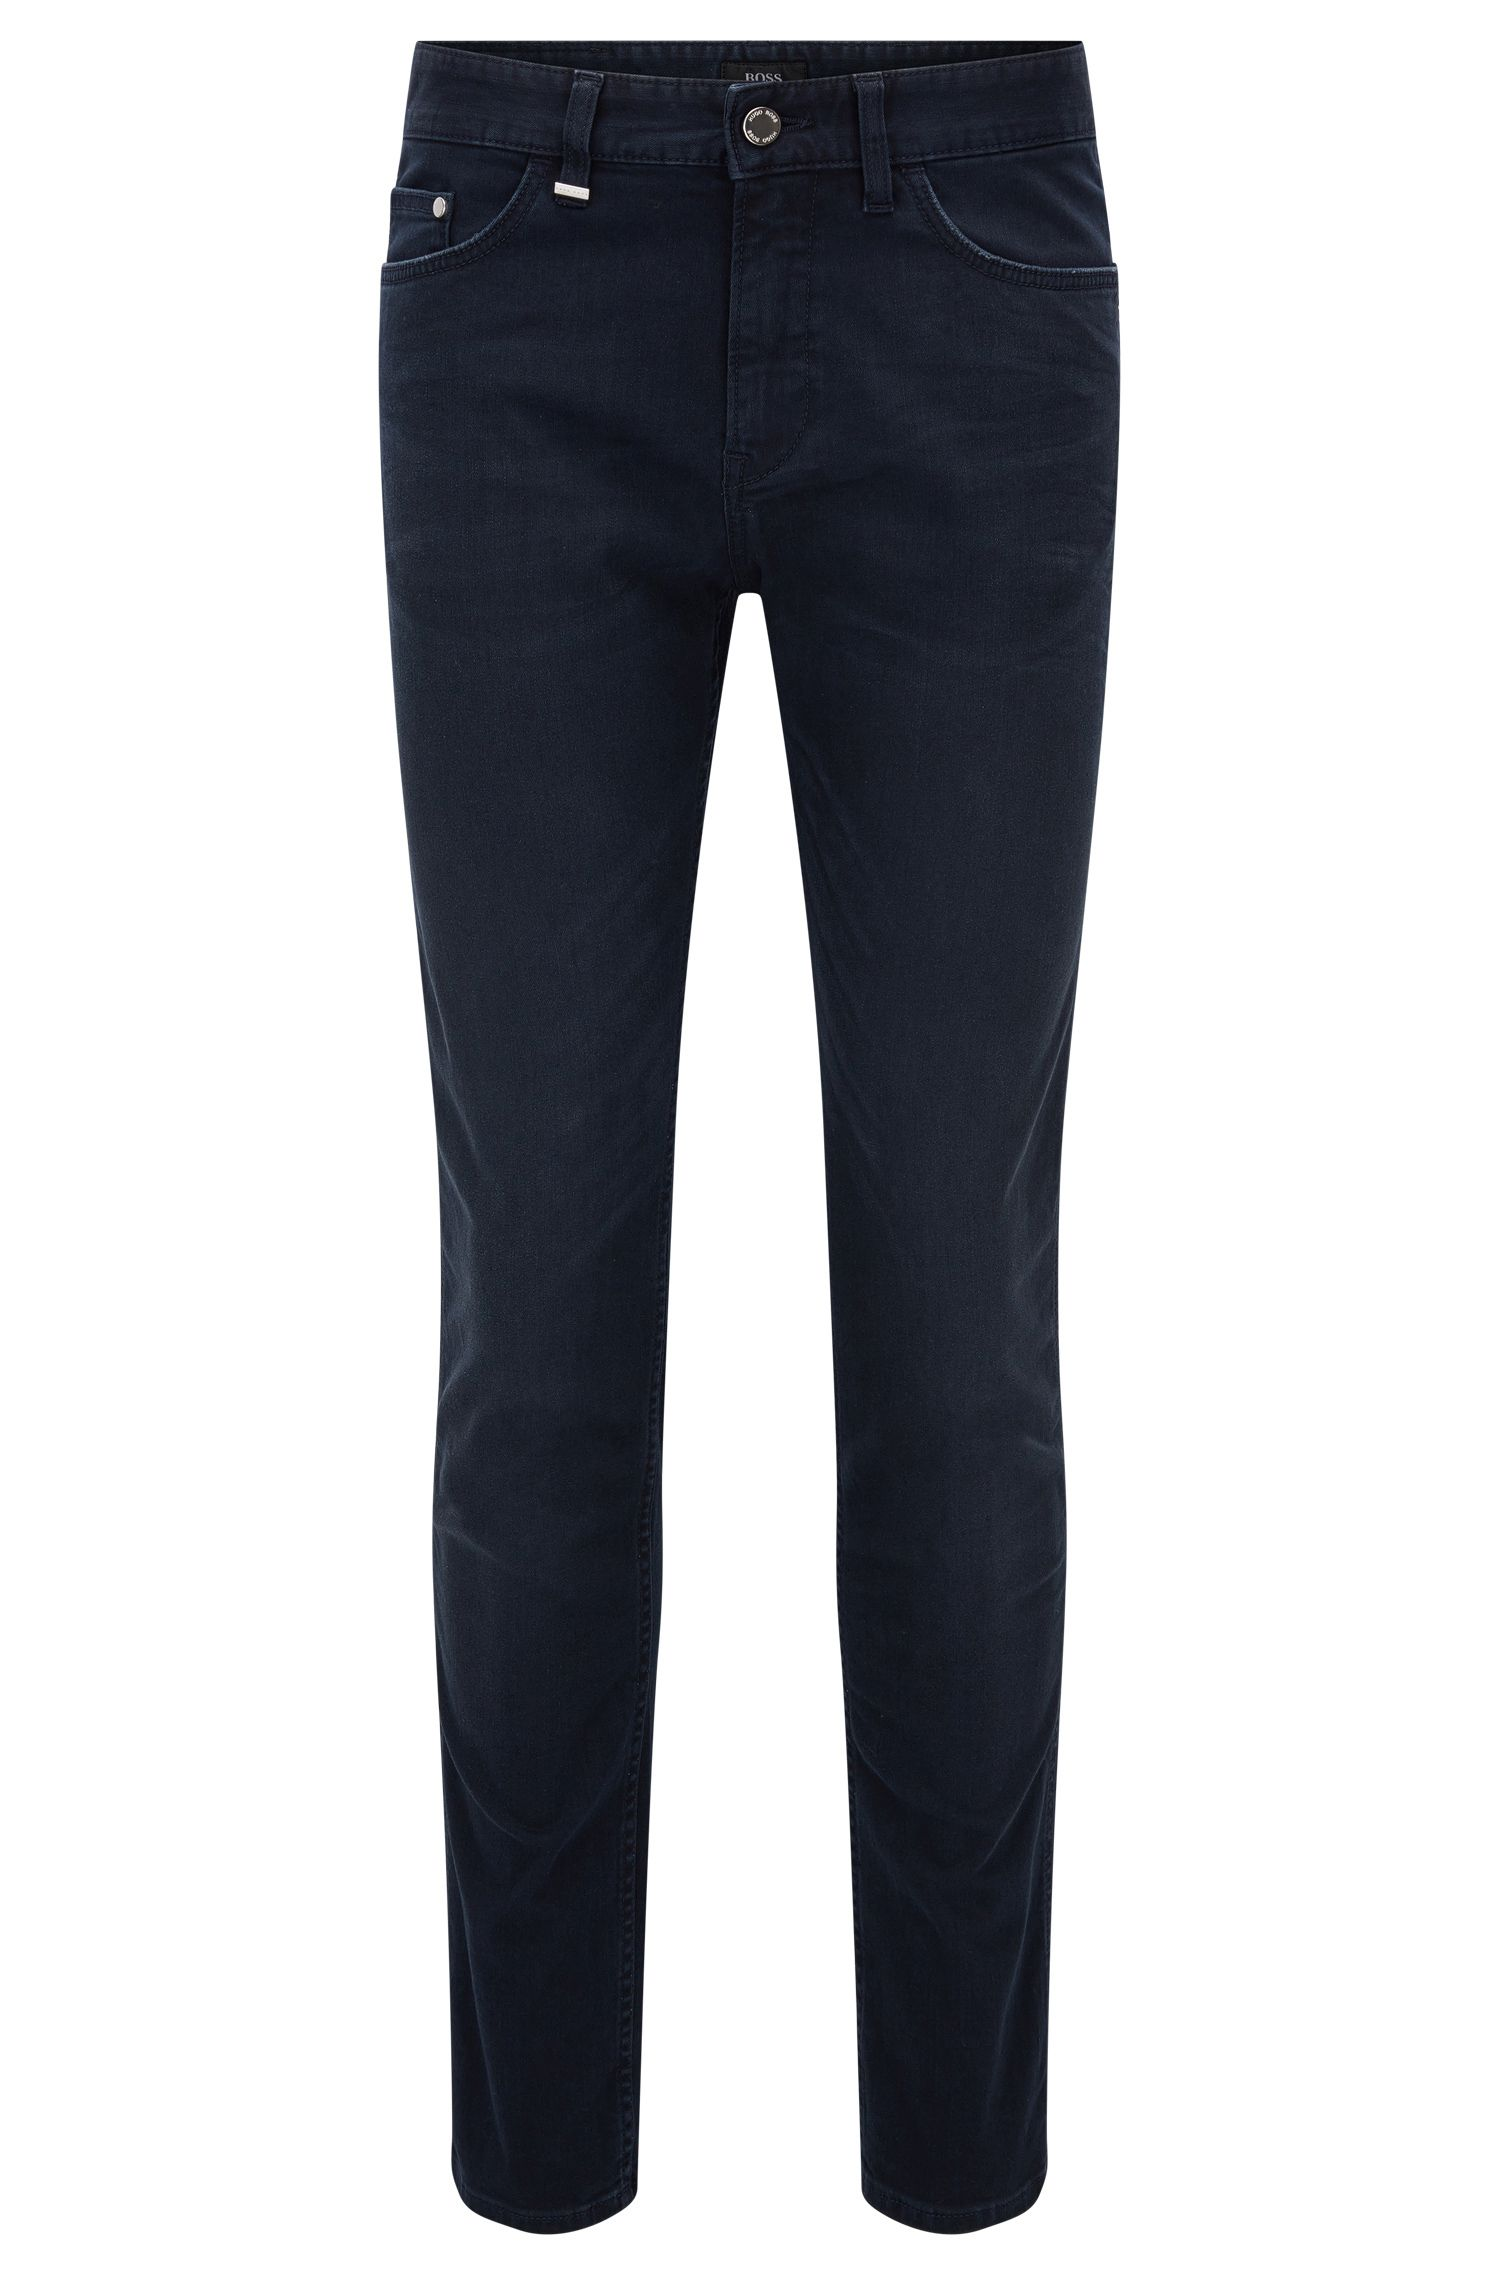 Jeans Slim Fit en denim stretch, gris-bleu